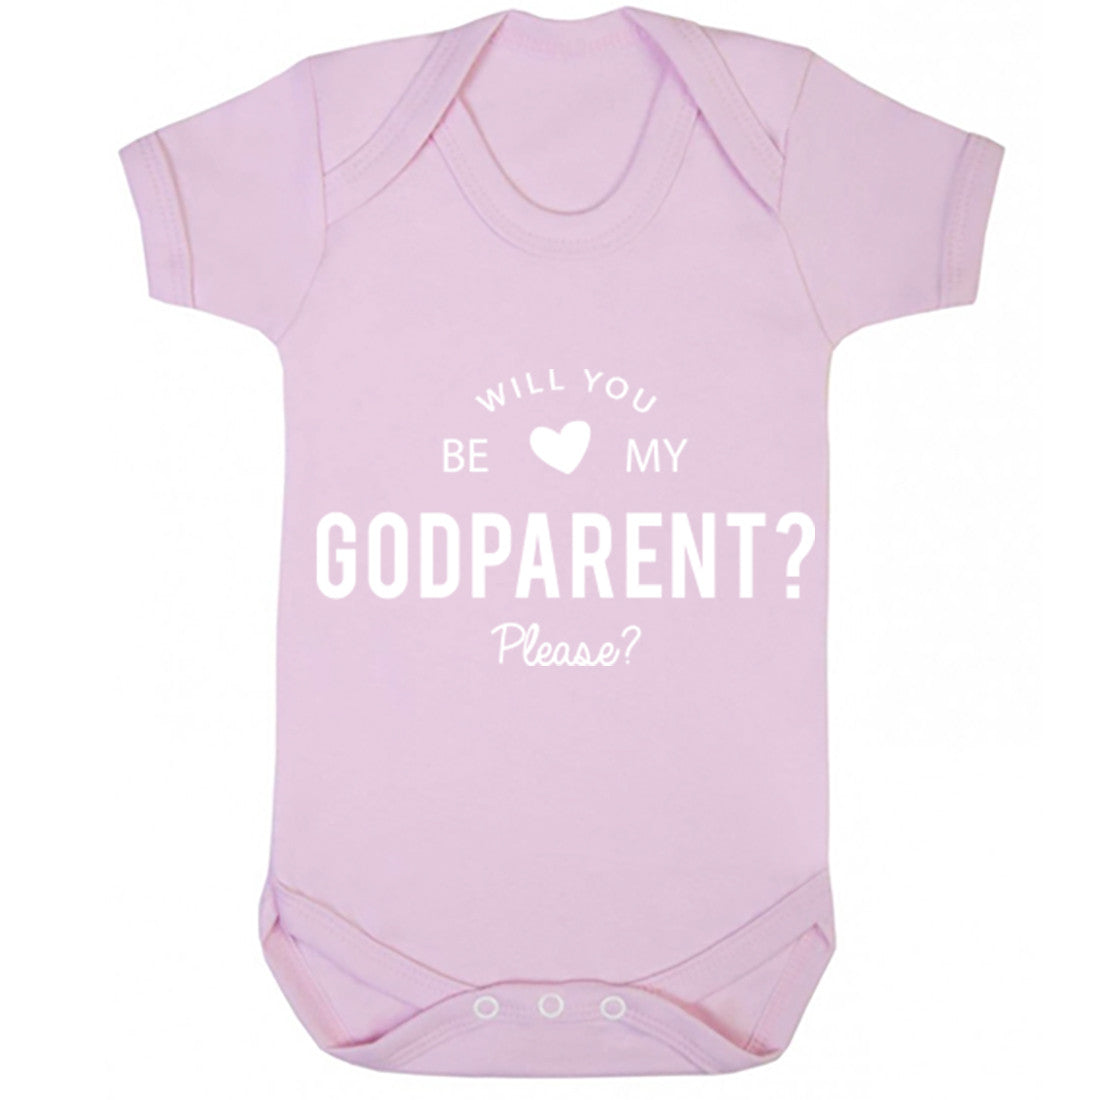 Will You Be My Godparent Please? Baby Vest K0112 - Illustrated Identity Ltd.